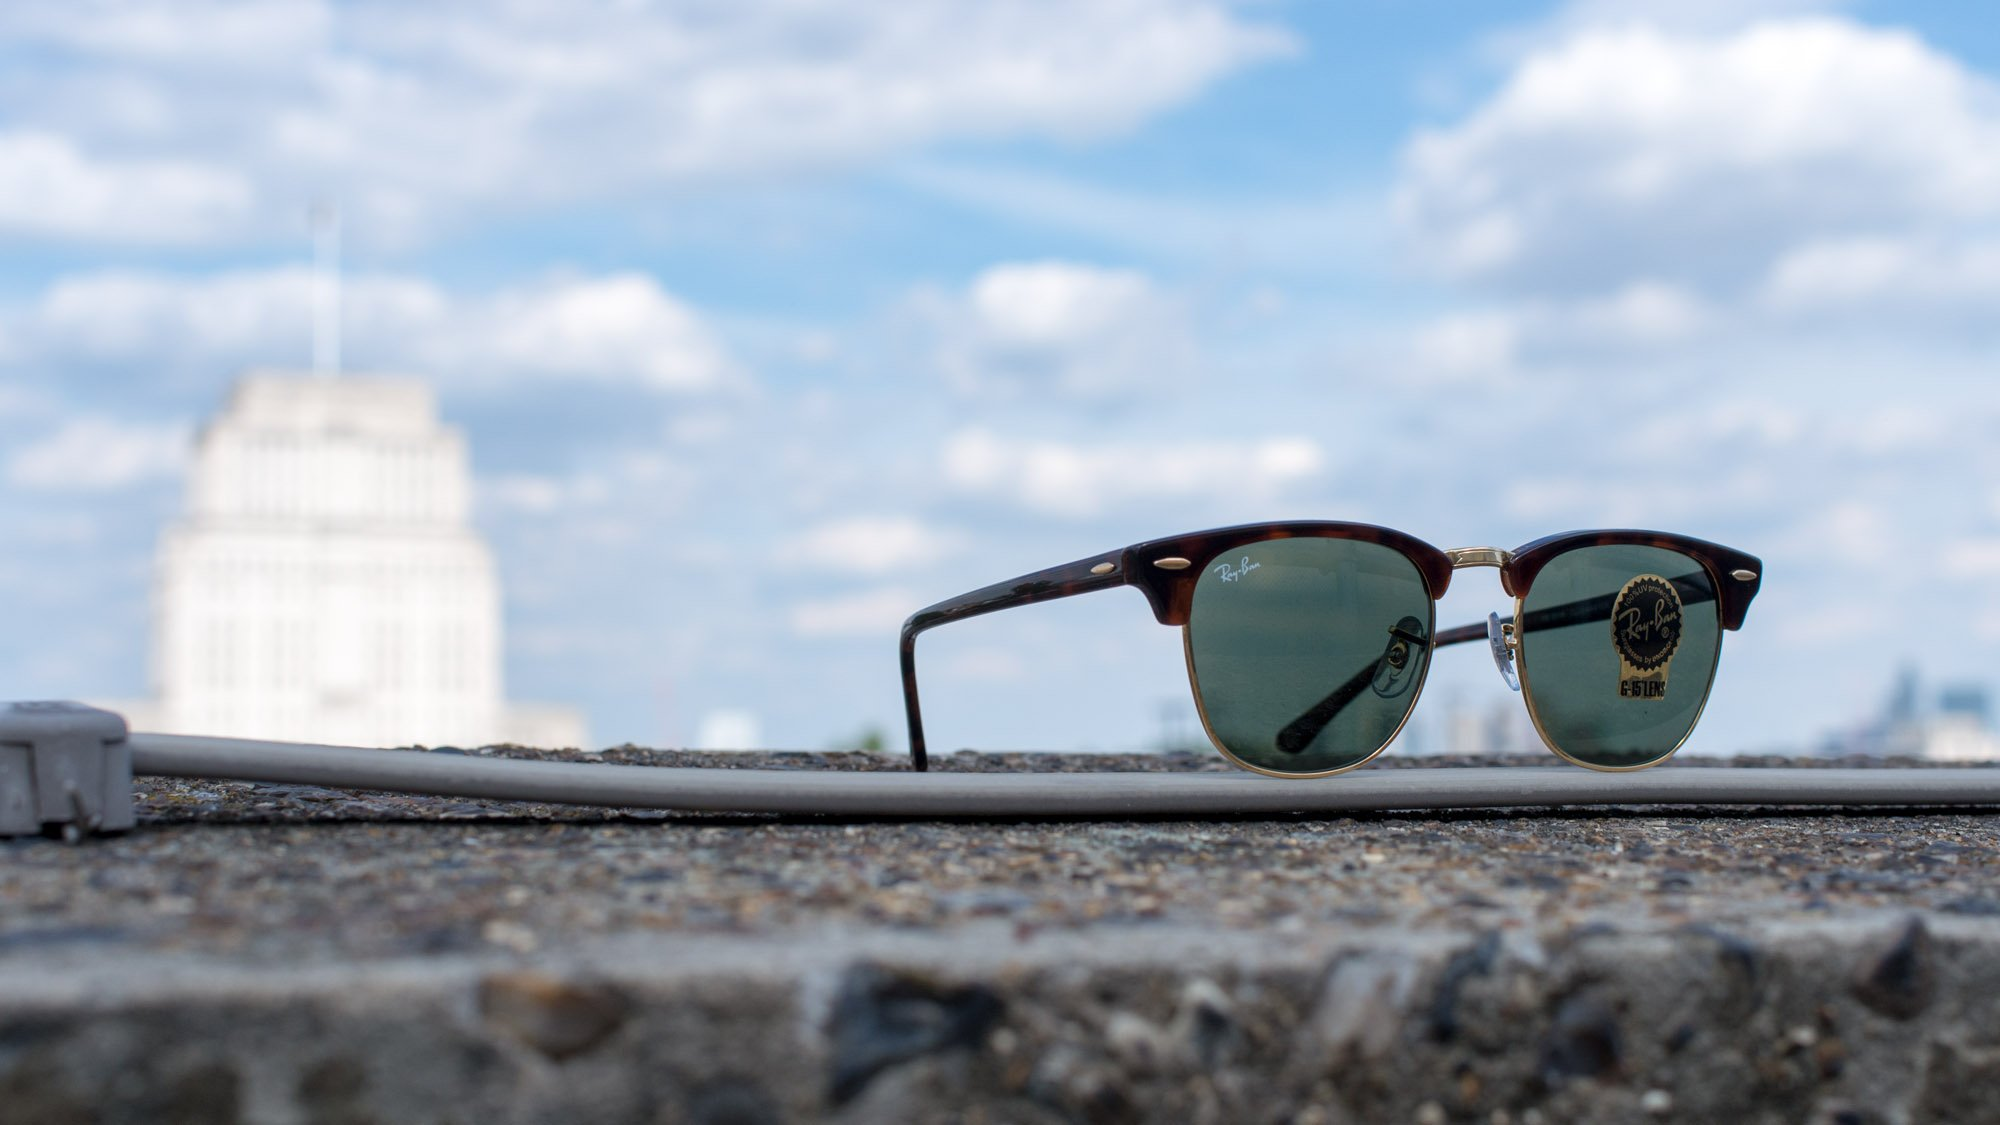 bc772552f317 Best sunglasses: Our favourite shades for men and women, from £9 to £290 |  Expert Reviews